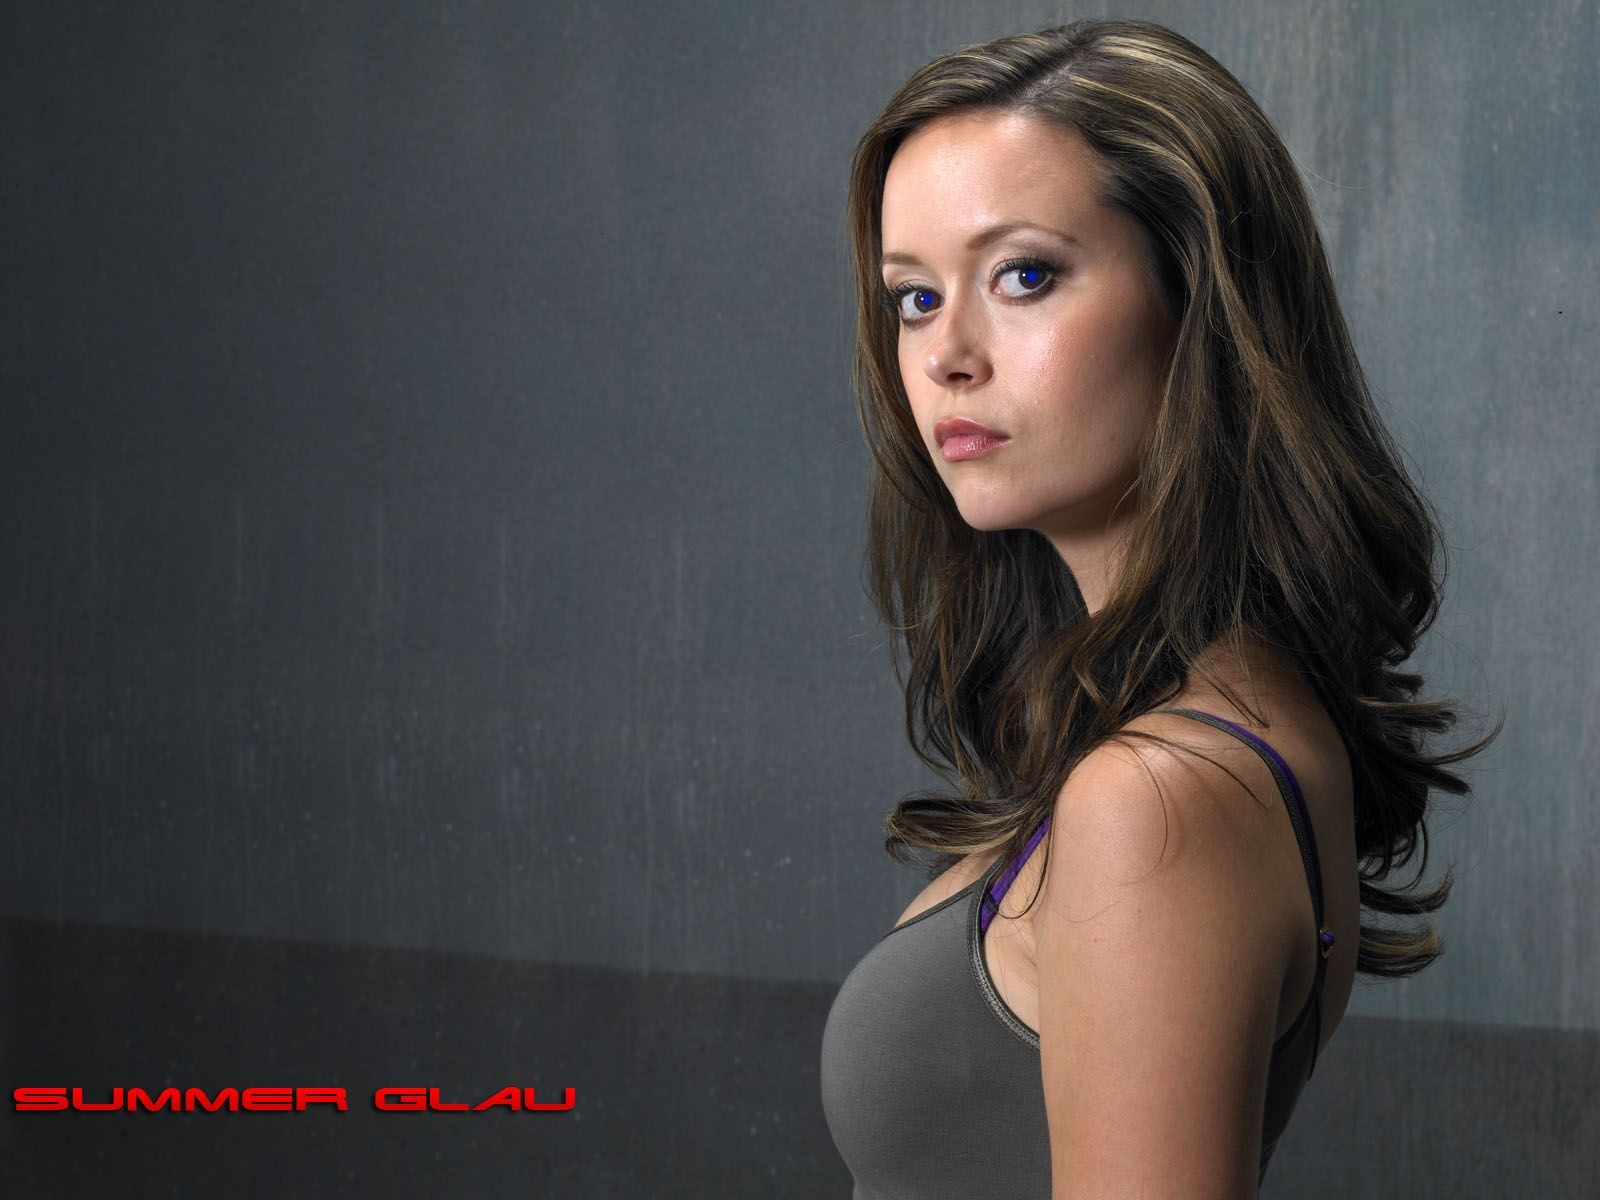 Summer Glau Rules!